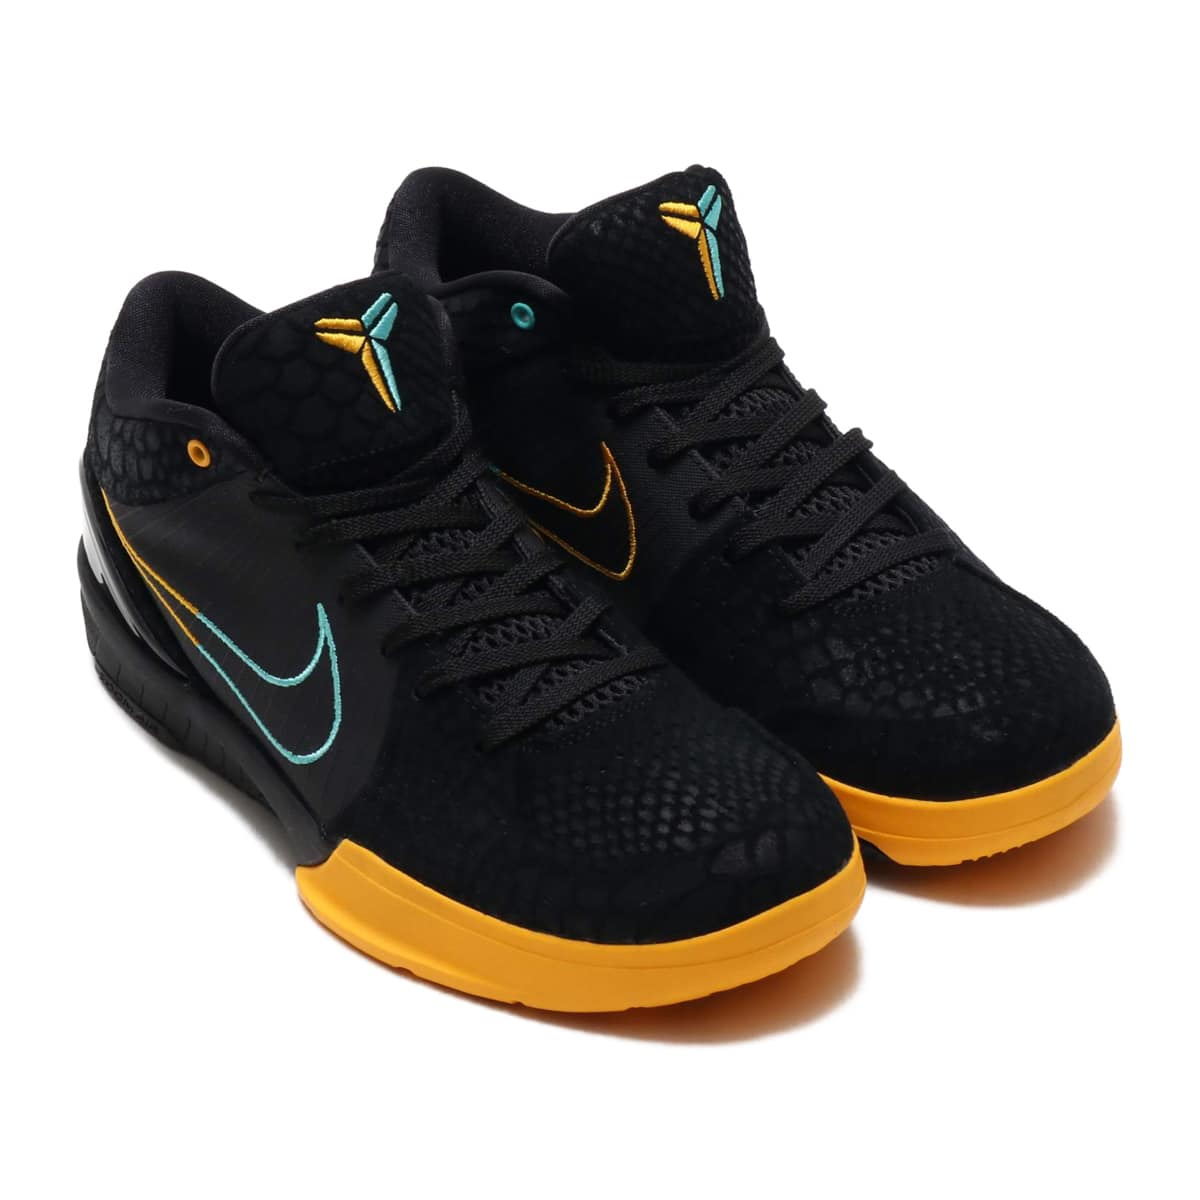 NIKE KOBE IV PROTRO BLACK/AURORA GREEN-UNIVERSITY GOLD 19HO-S_photo_large